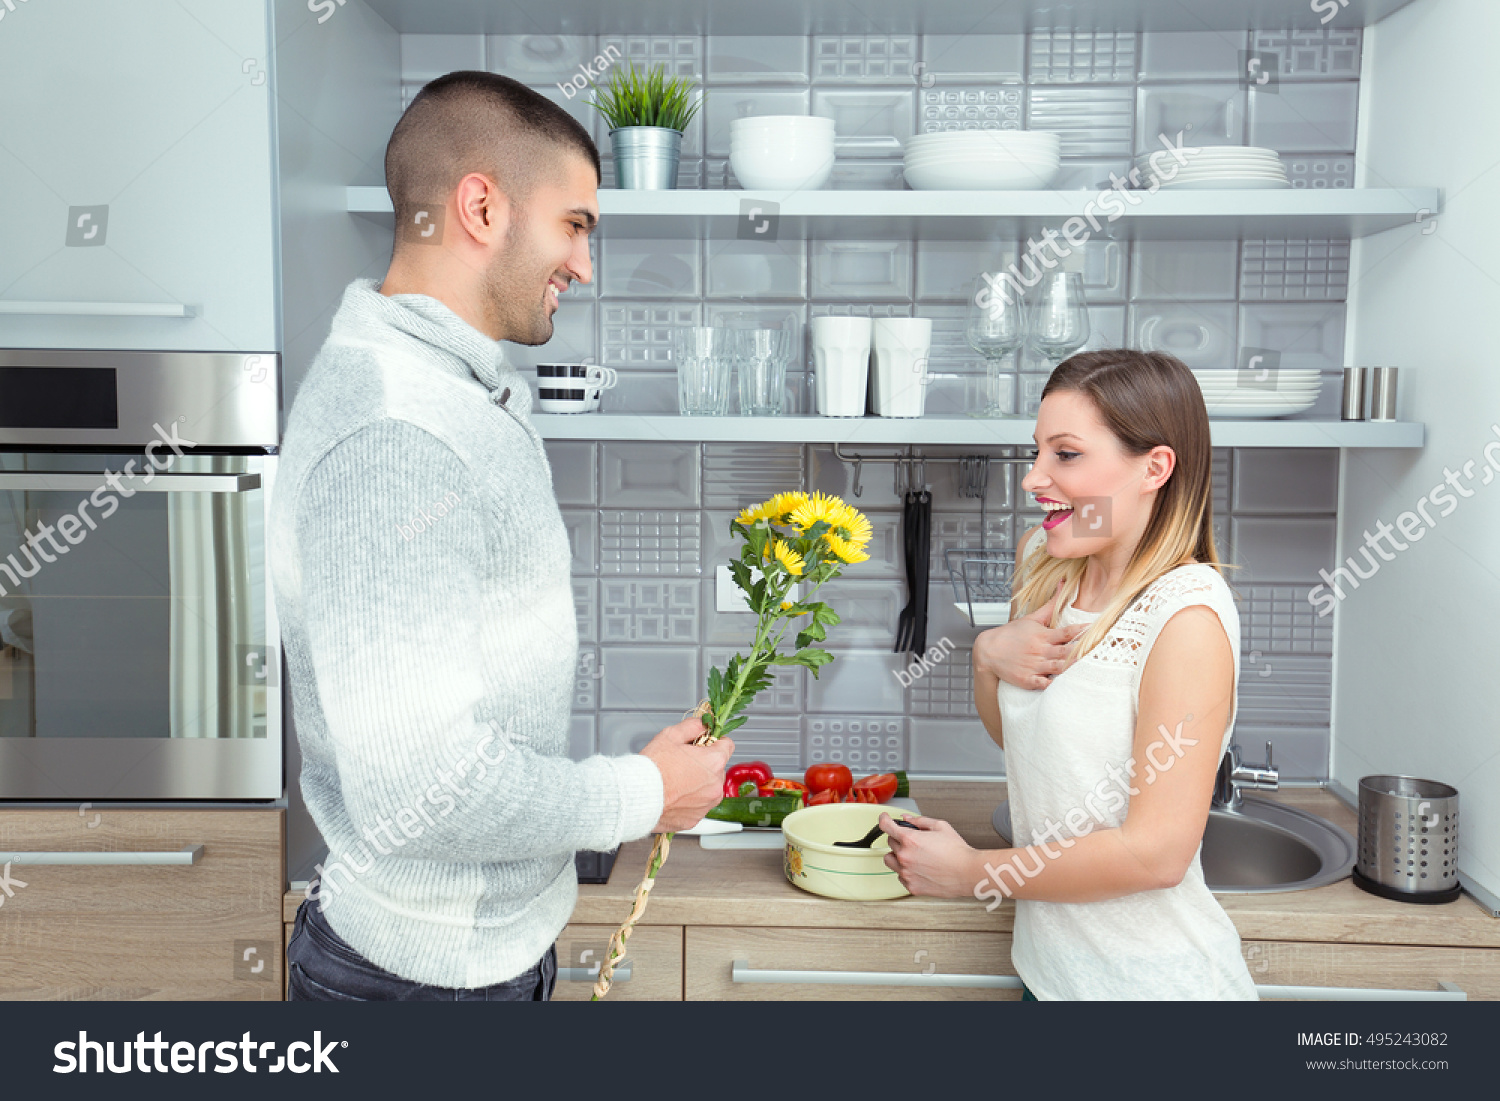 Young Couple Cooking Kitchen Young Man Stock Photo (Royalty Free ...